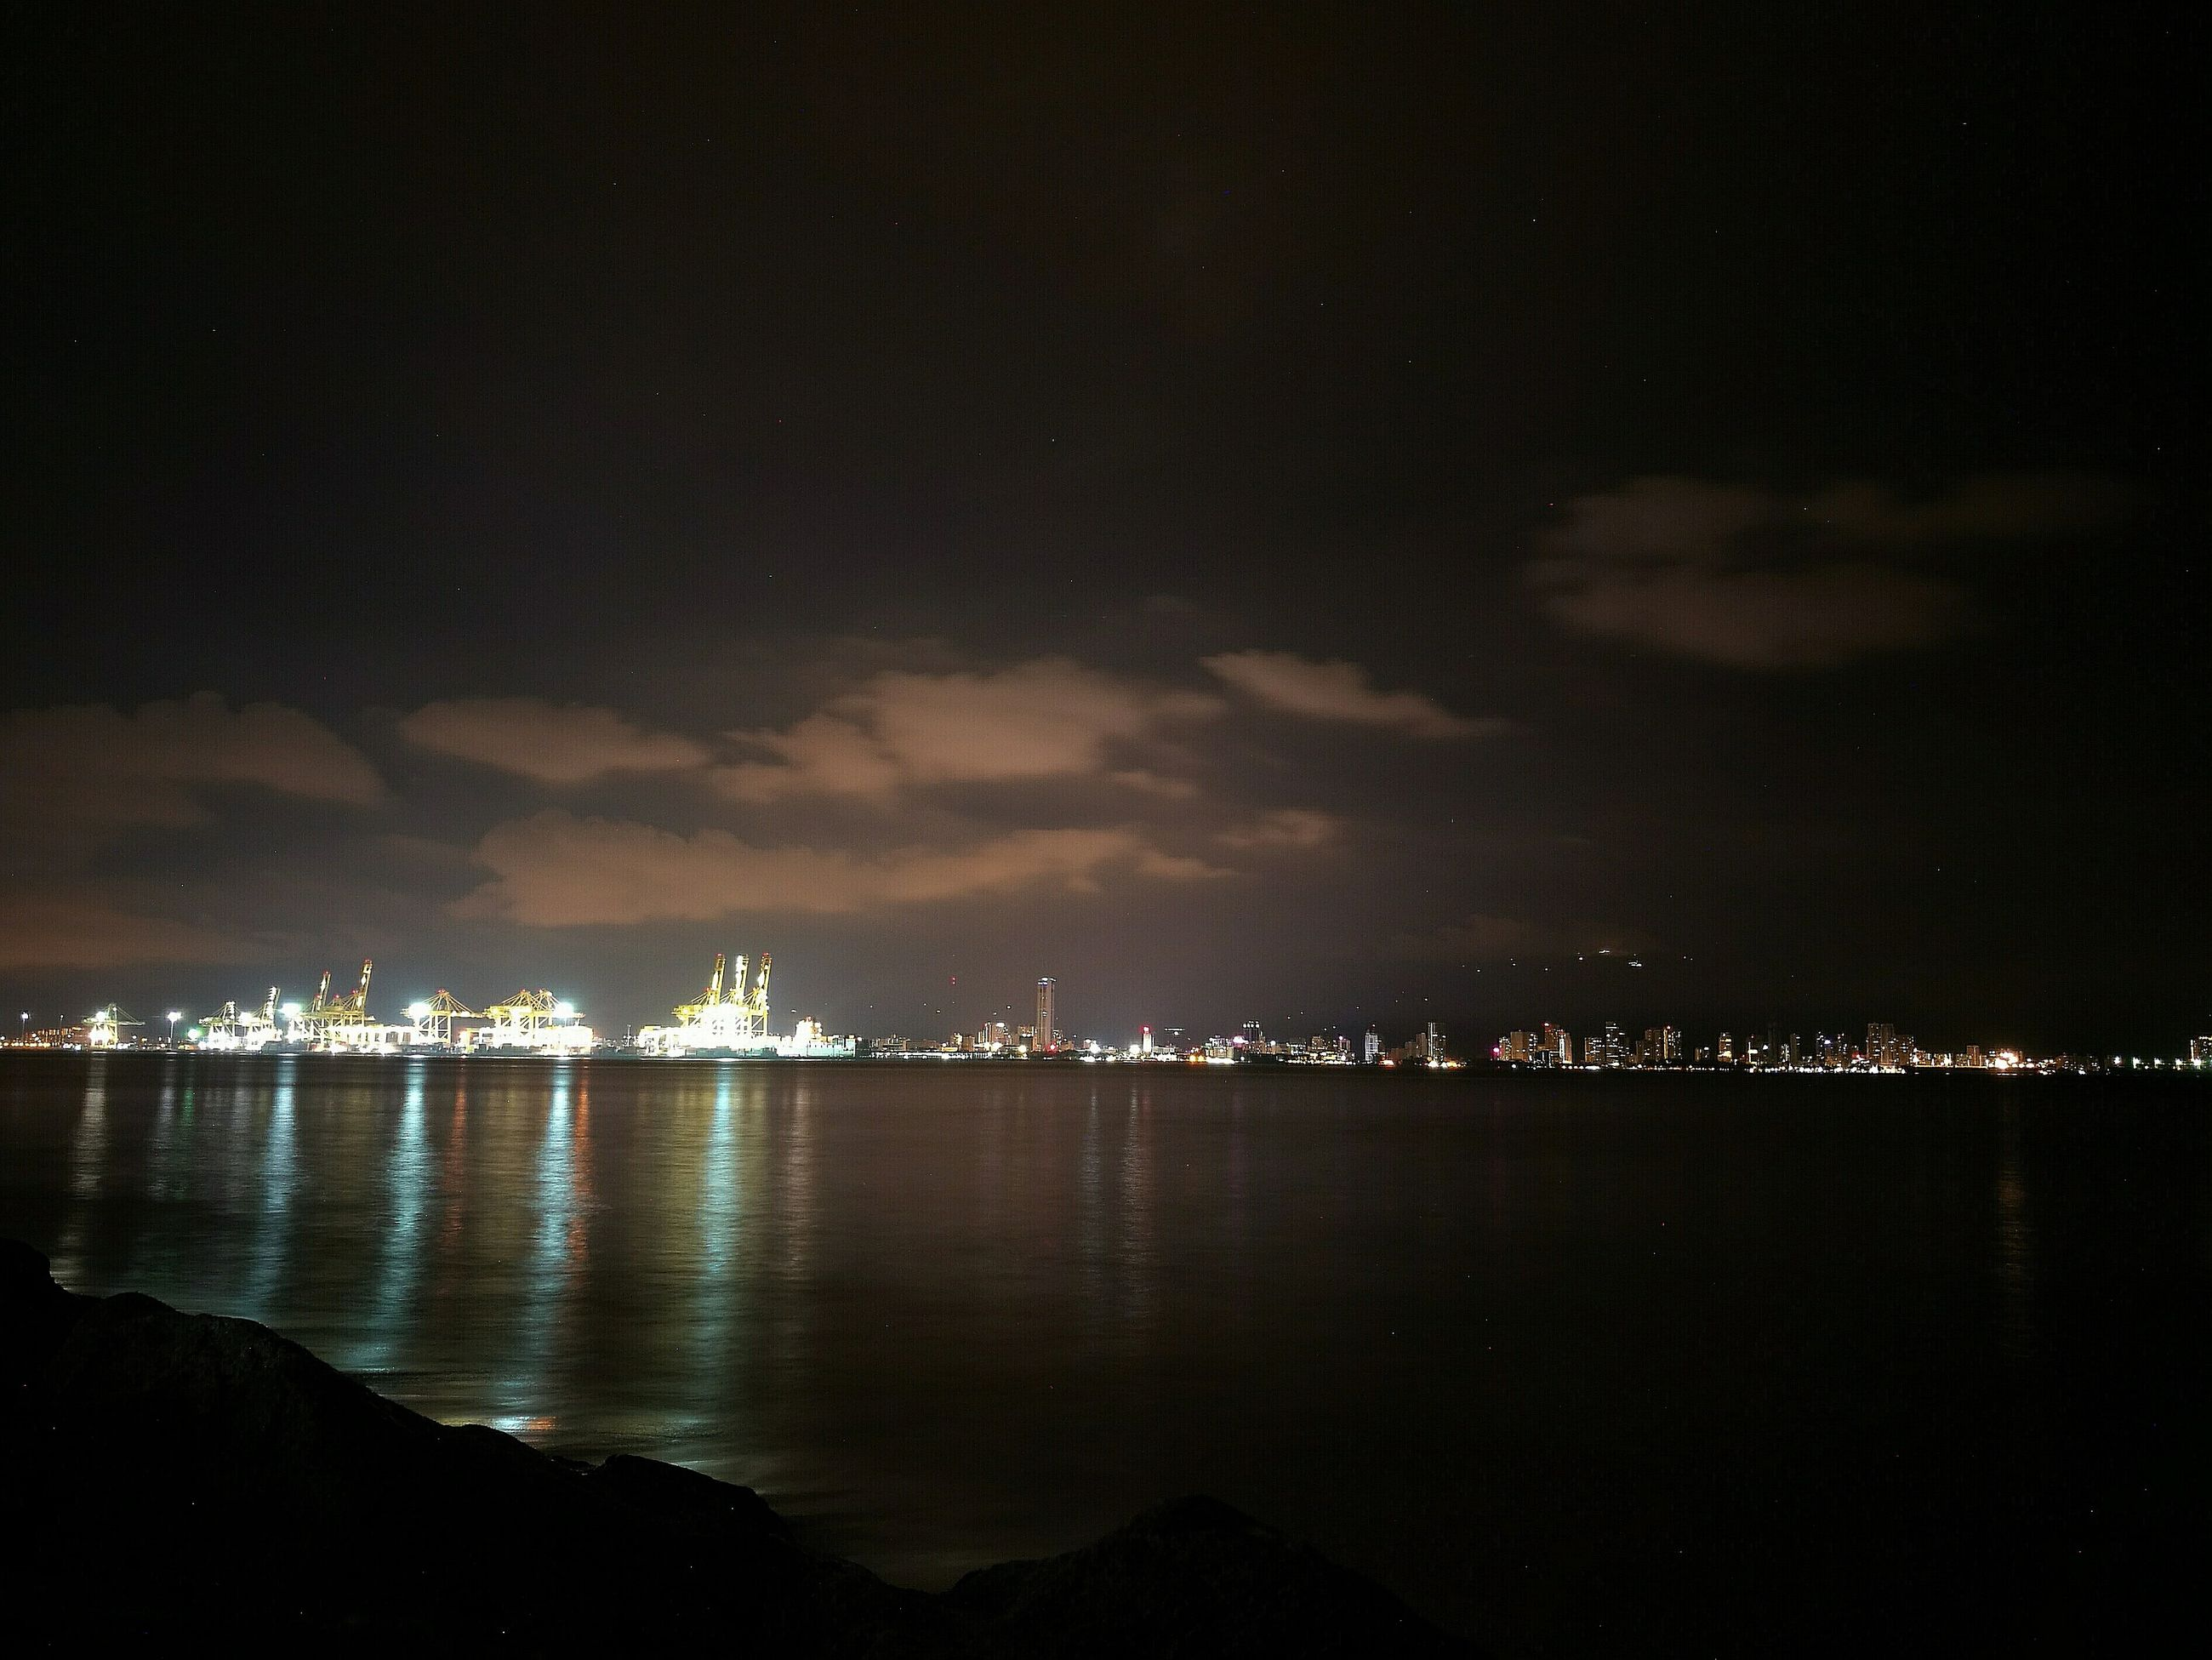 illuminated, city, water, architecture, night, building exterior, built structure, cityscape, sea, waterfront, sky, skyscraper, scenics, distant, reflection, cloud, tranquil scene, tranquility, skyline, outdoors, calm, city life, urban skyline, nature, cloud - sky, atmosphere, no people, development, ocean